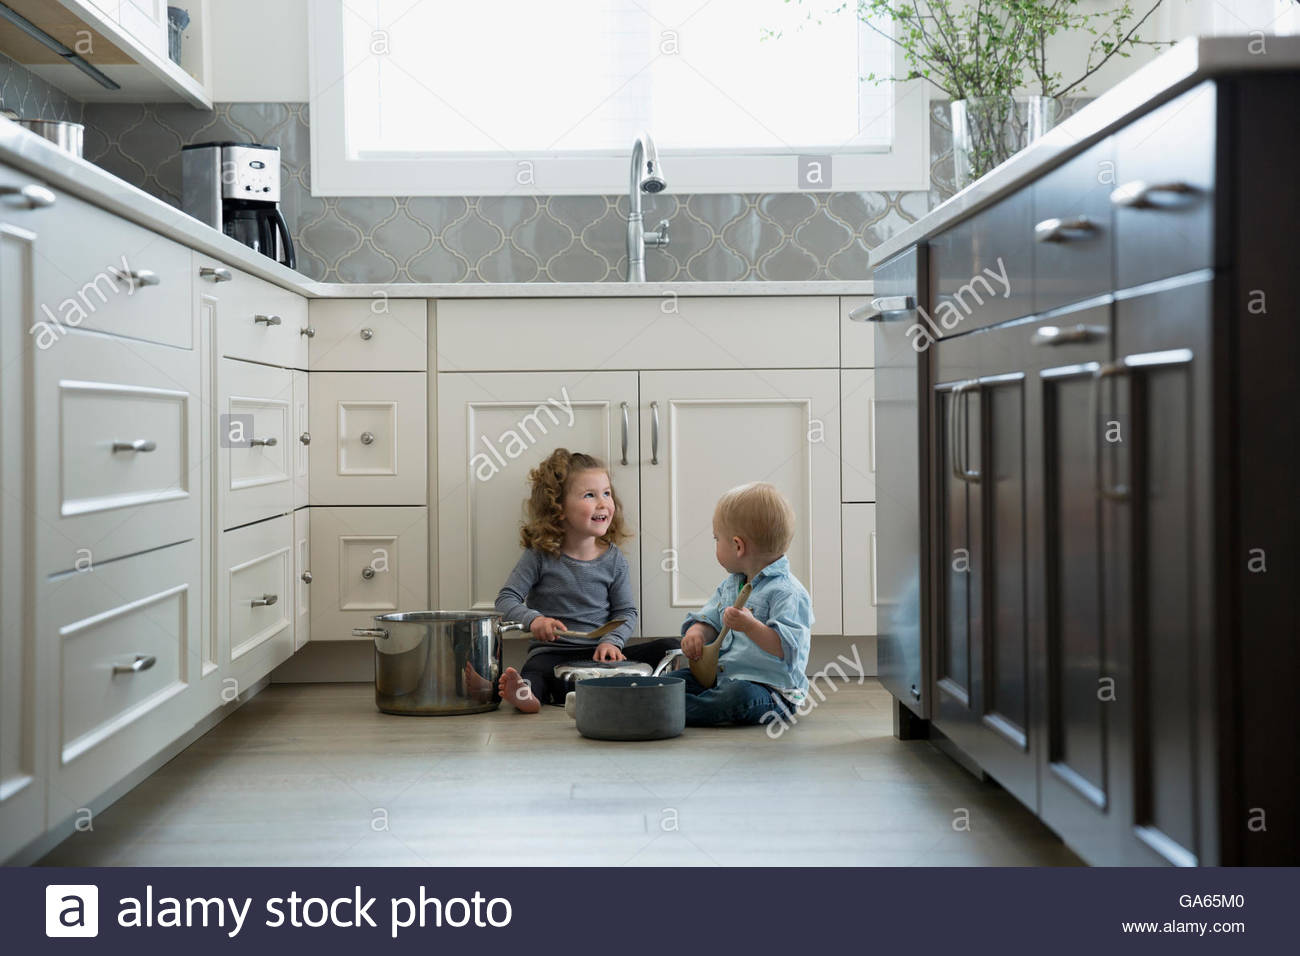 Brother and sister playing with pots and pans on kitchen floor - Stock Image